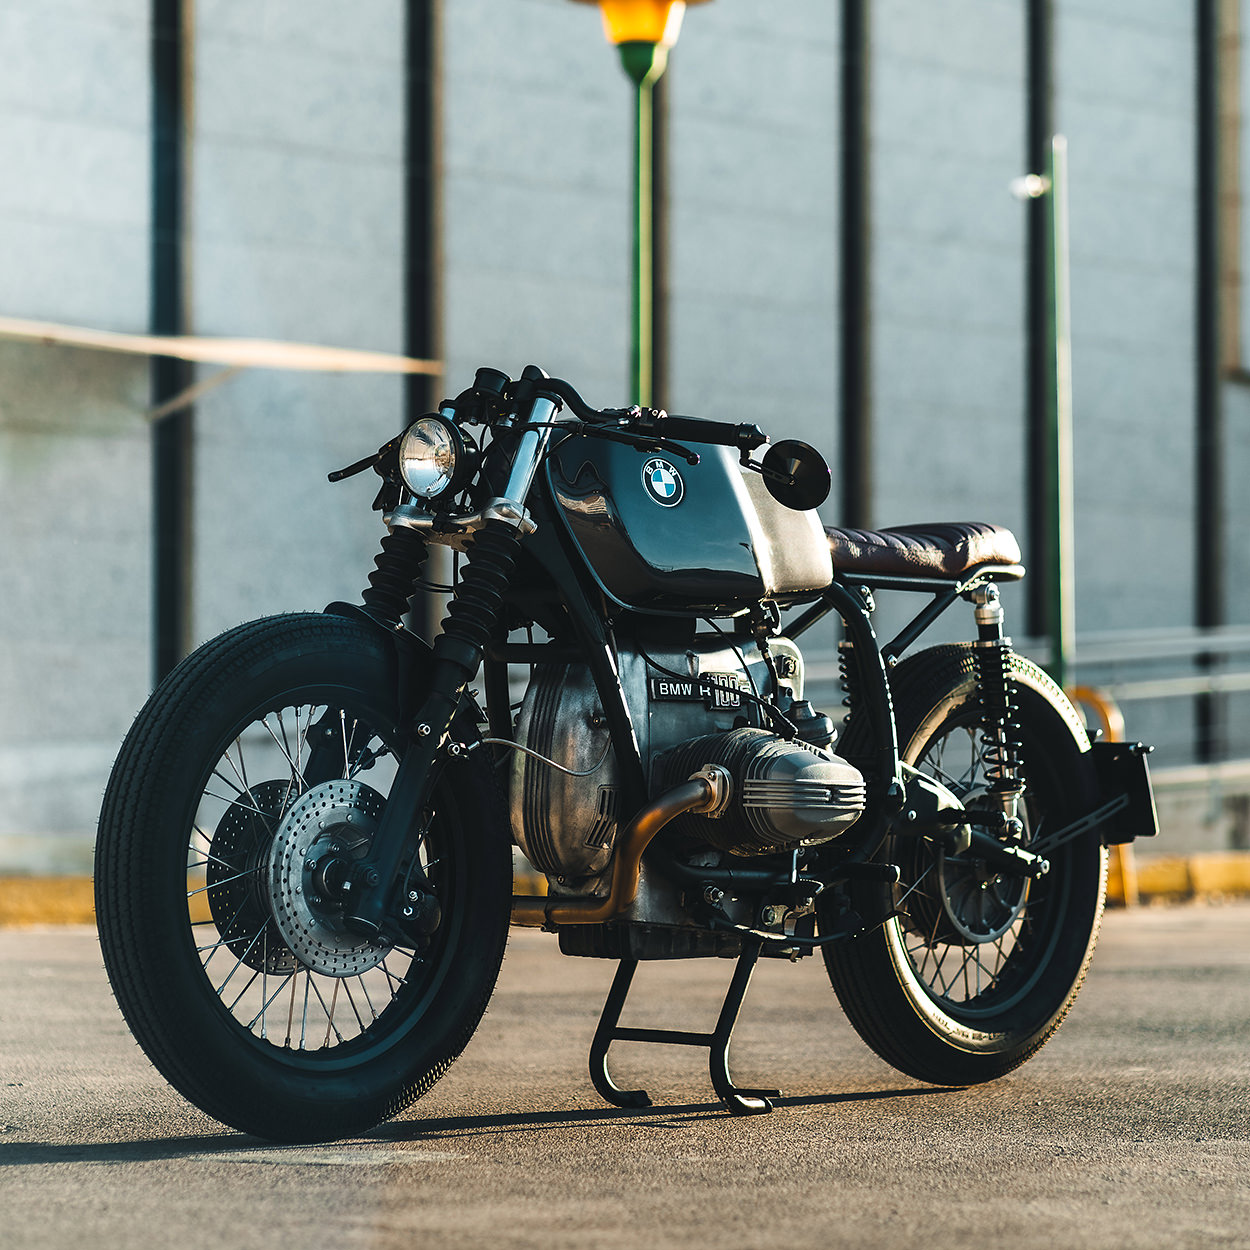 BMW R100 cafe racer by Ønix Design